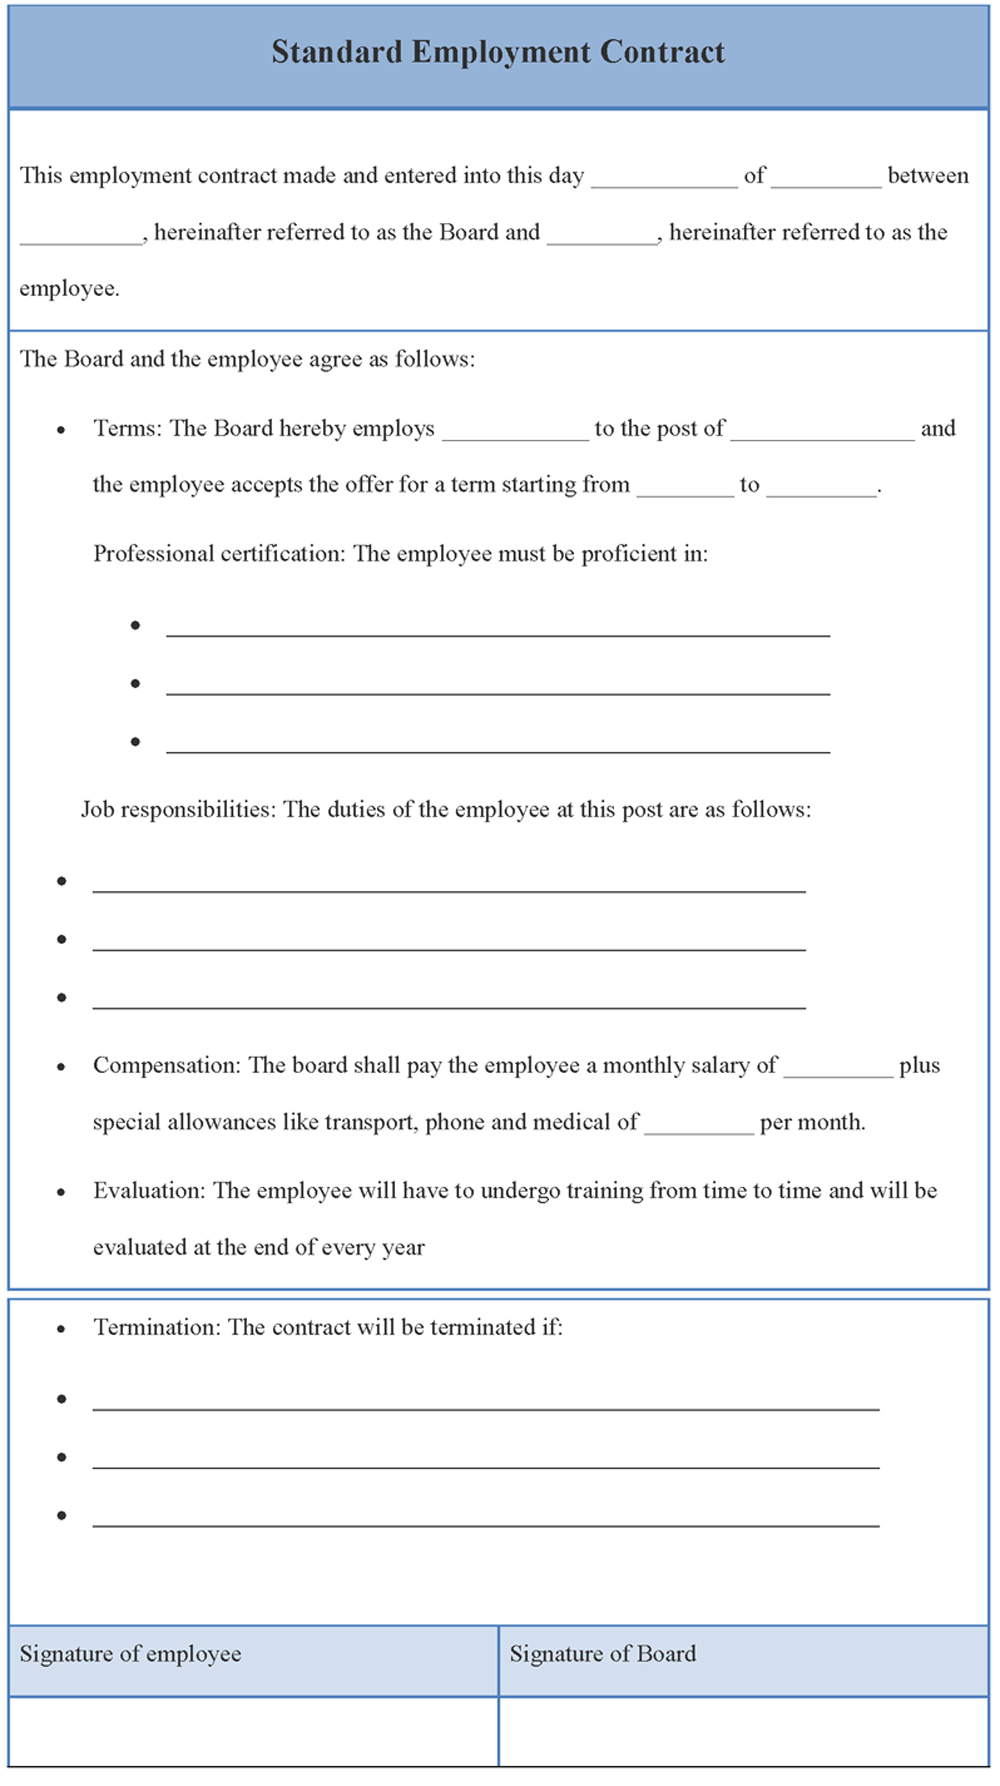 Standard Employment Contract Template Contract template